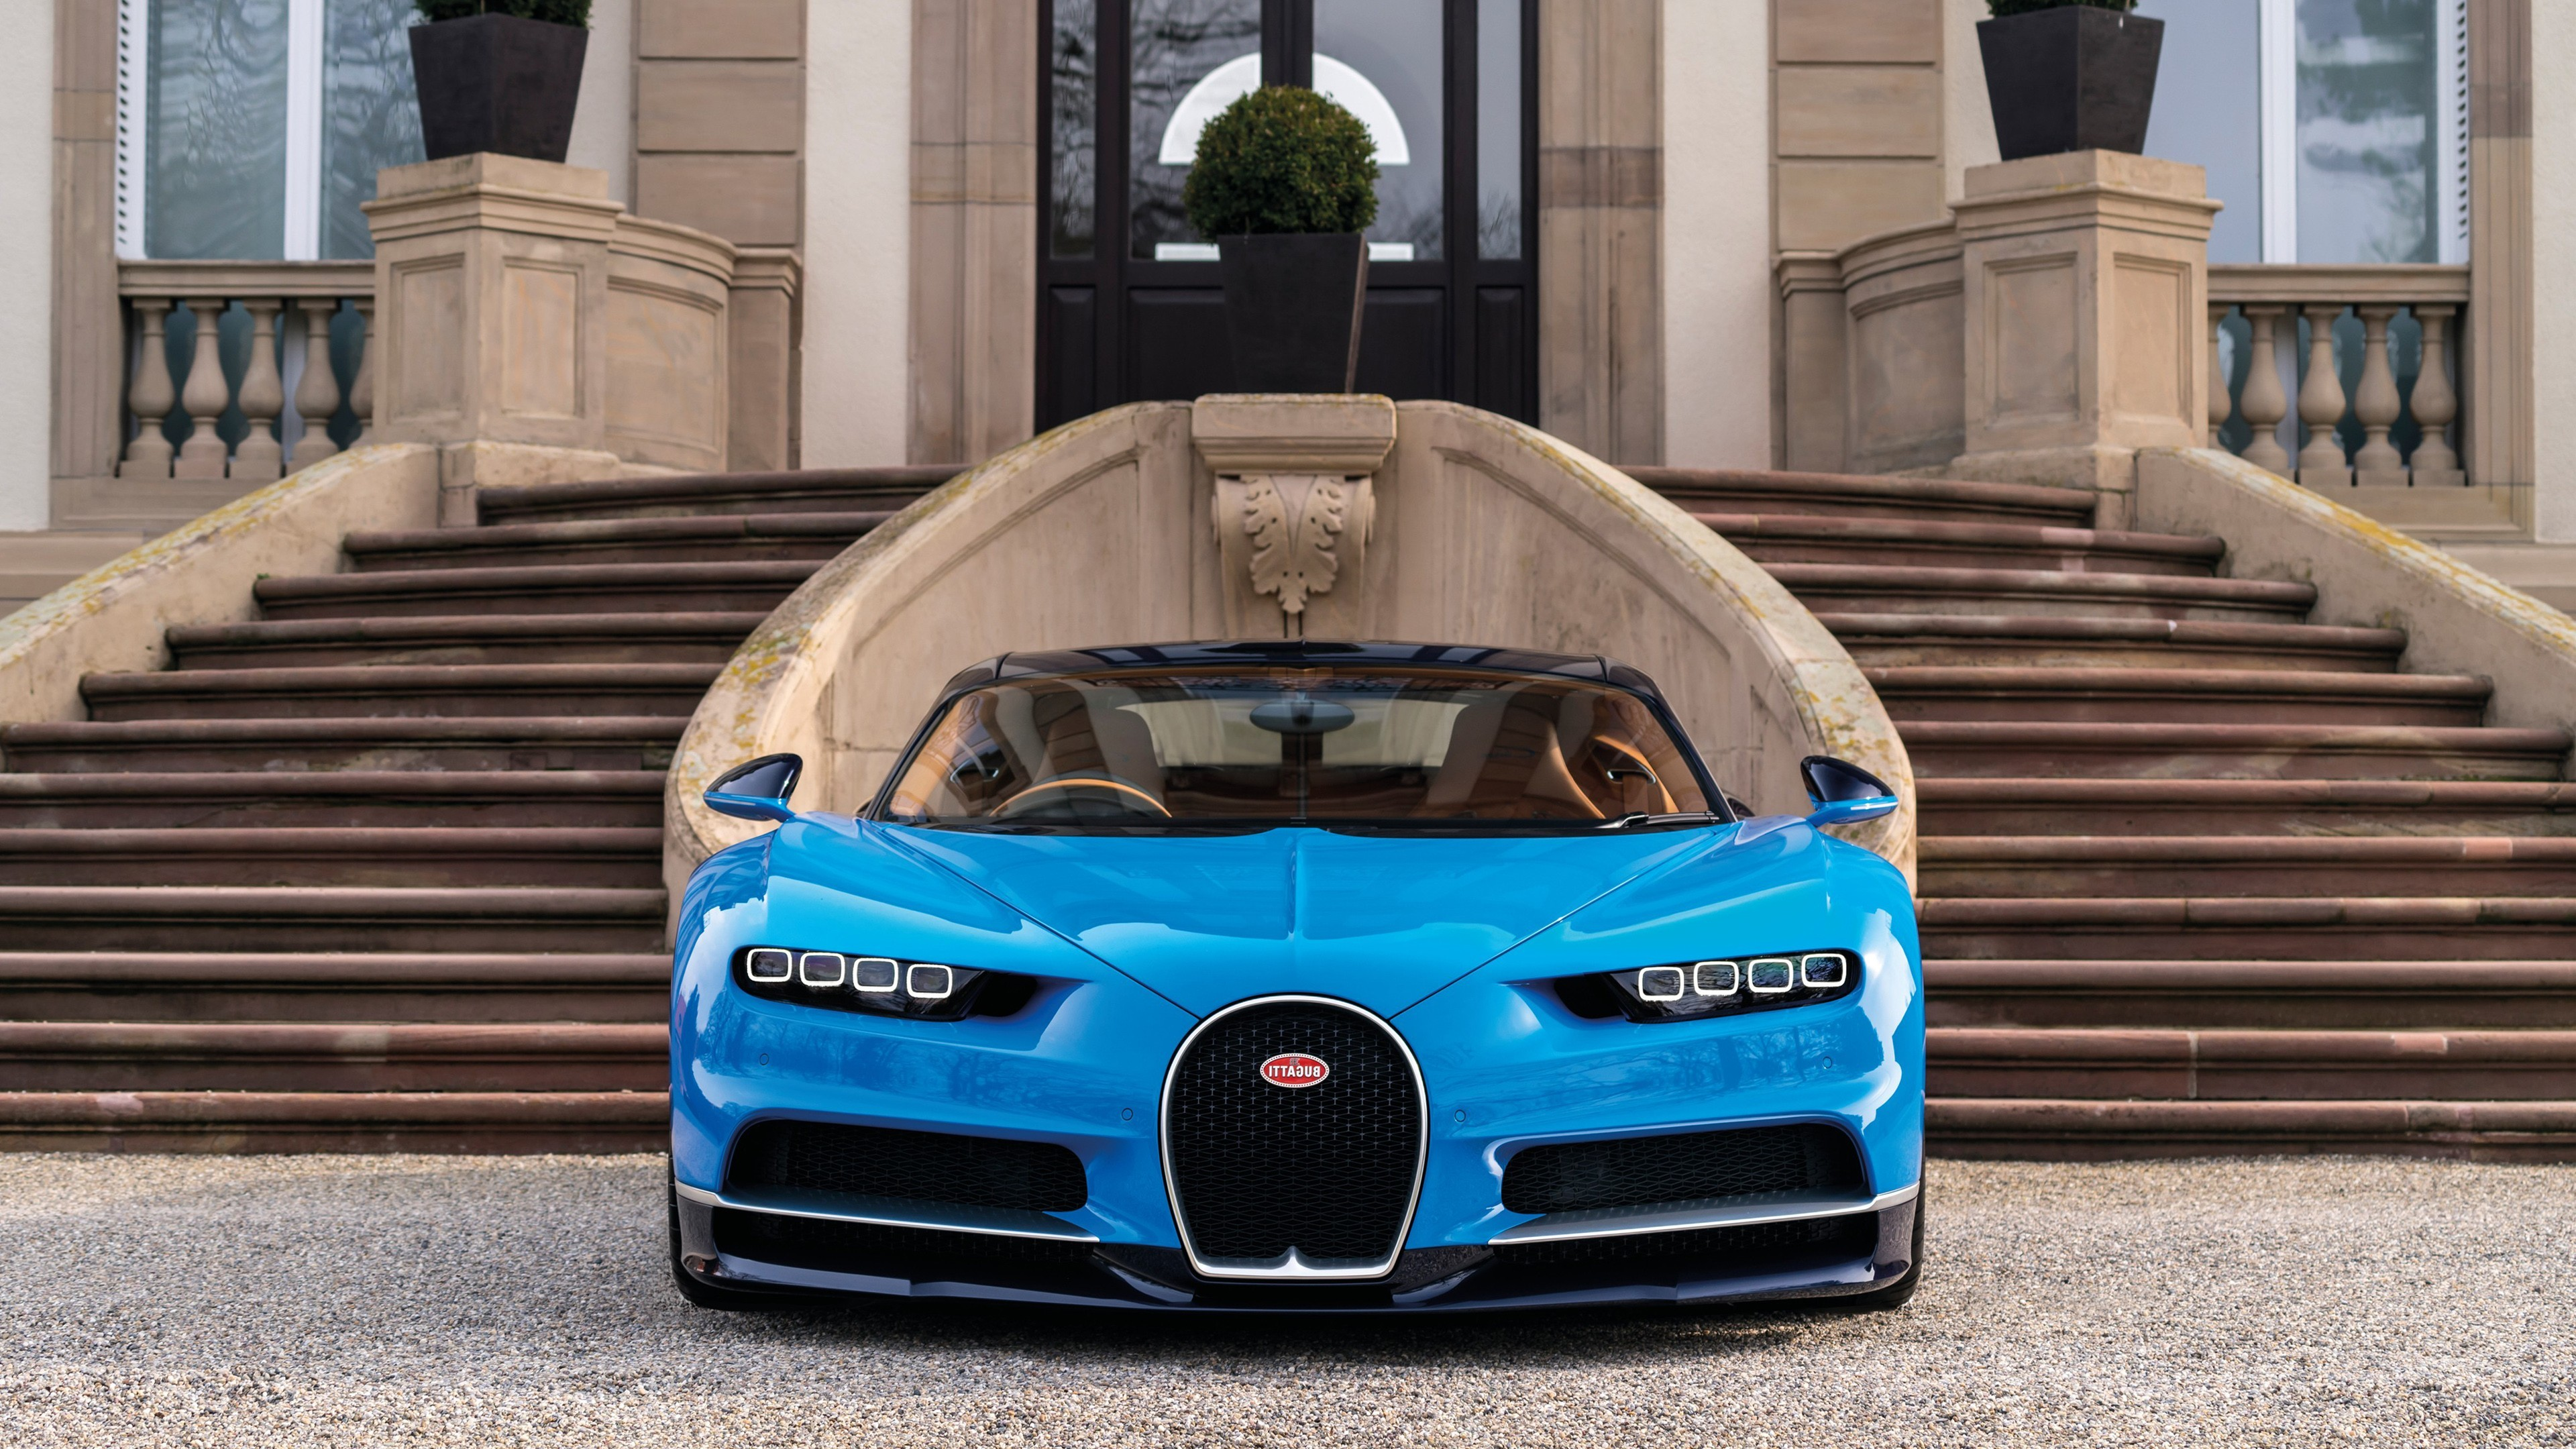 1366x768 2017 Bugatti Chiron 1366x768 Resolution Hd 4k Wallpapers